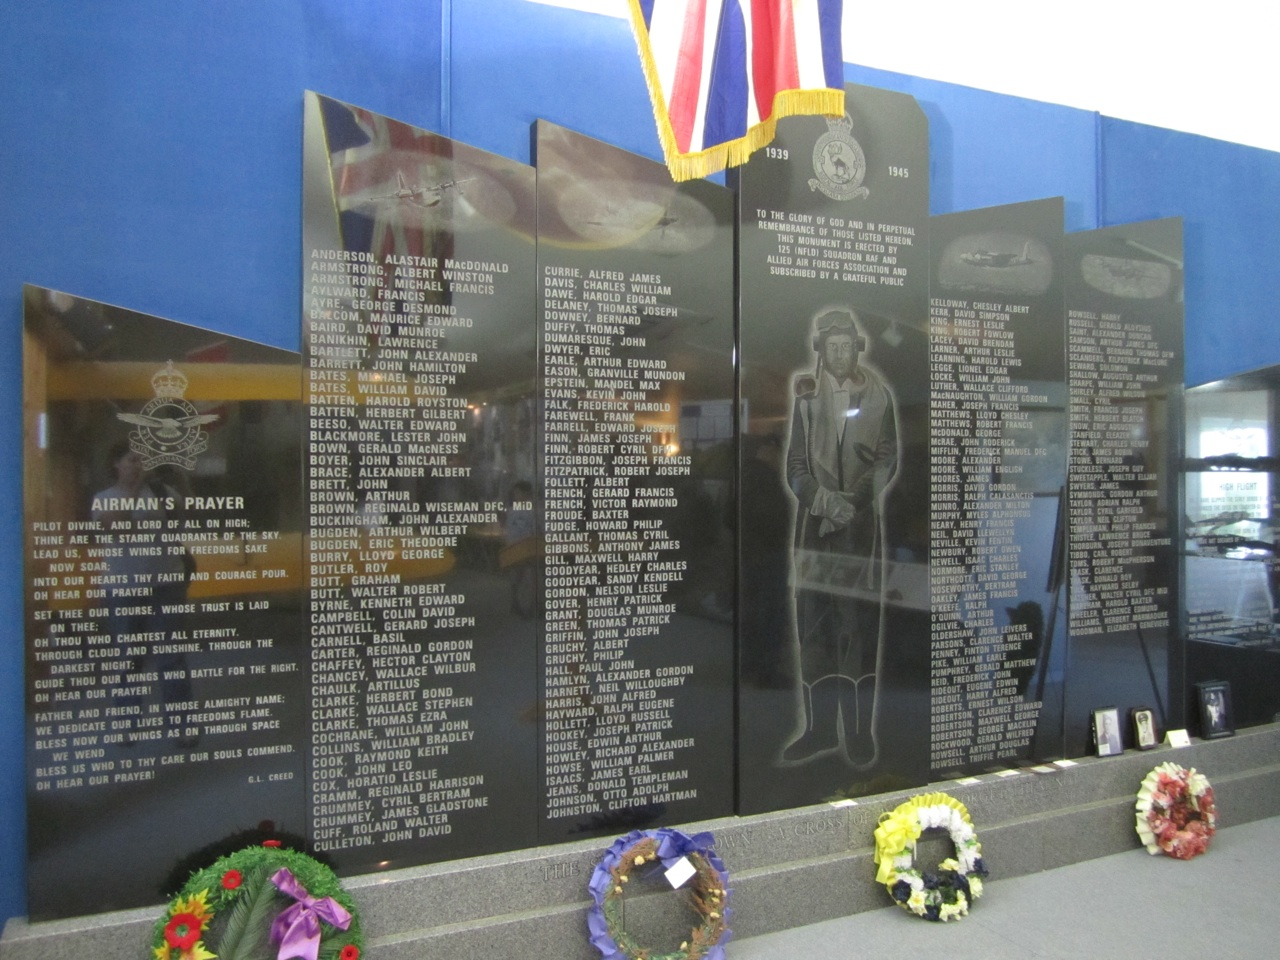 The Memorial Wall Inside The Museum